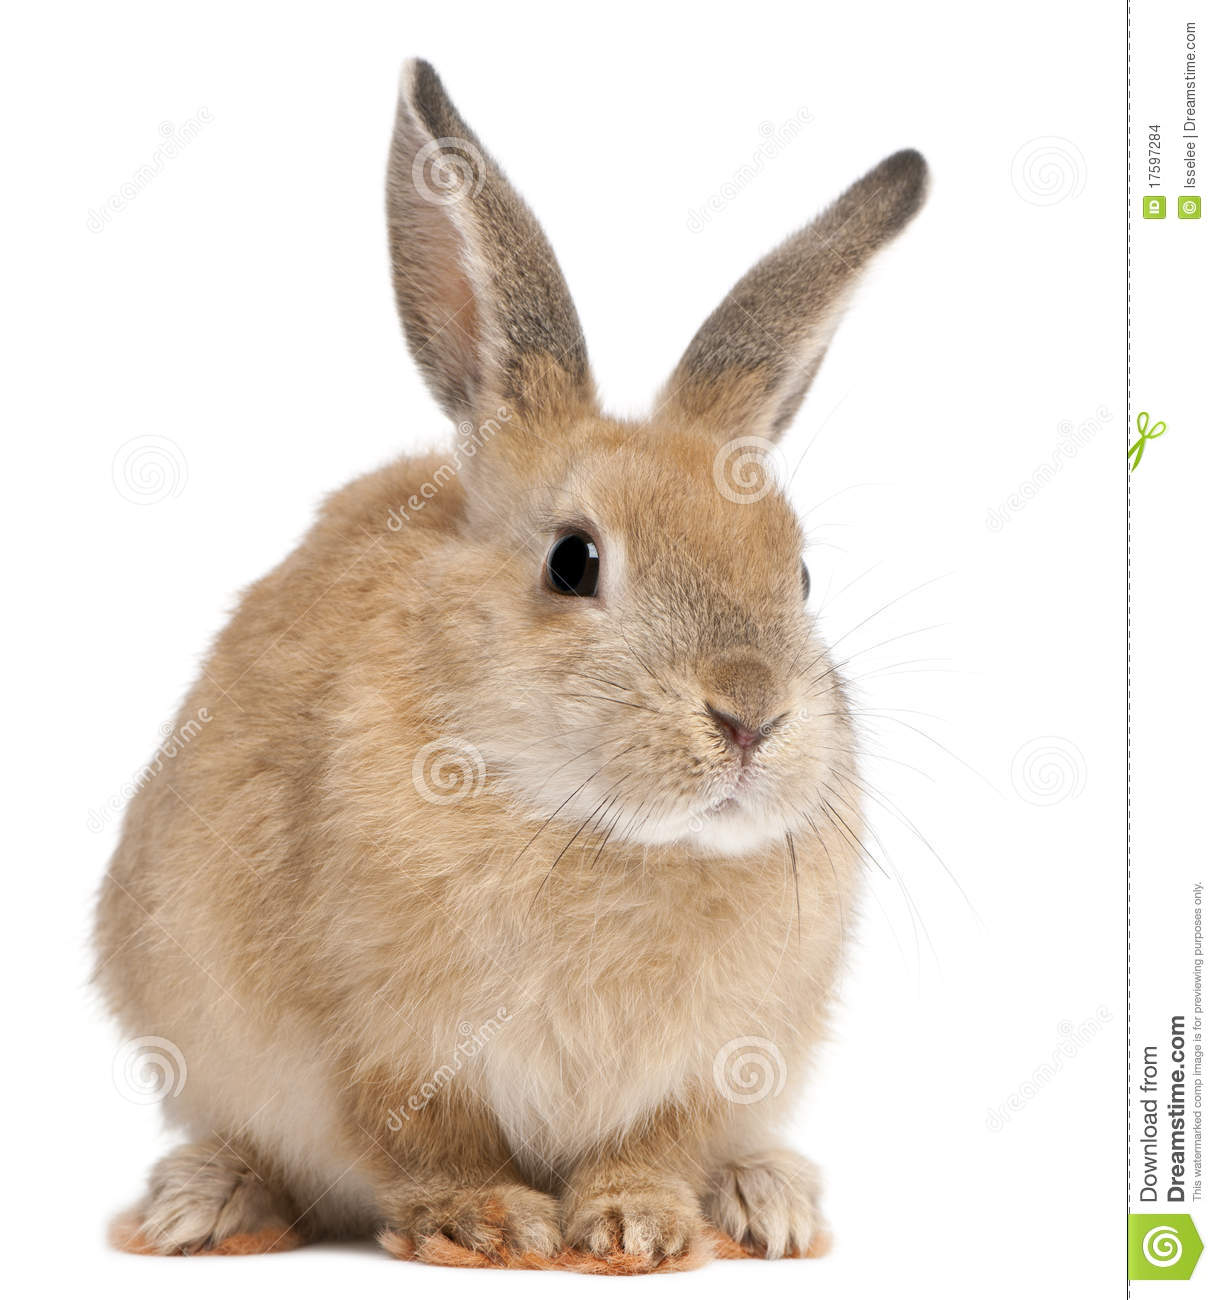 Bunny Rabbit Stock Images - Image: 17597284